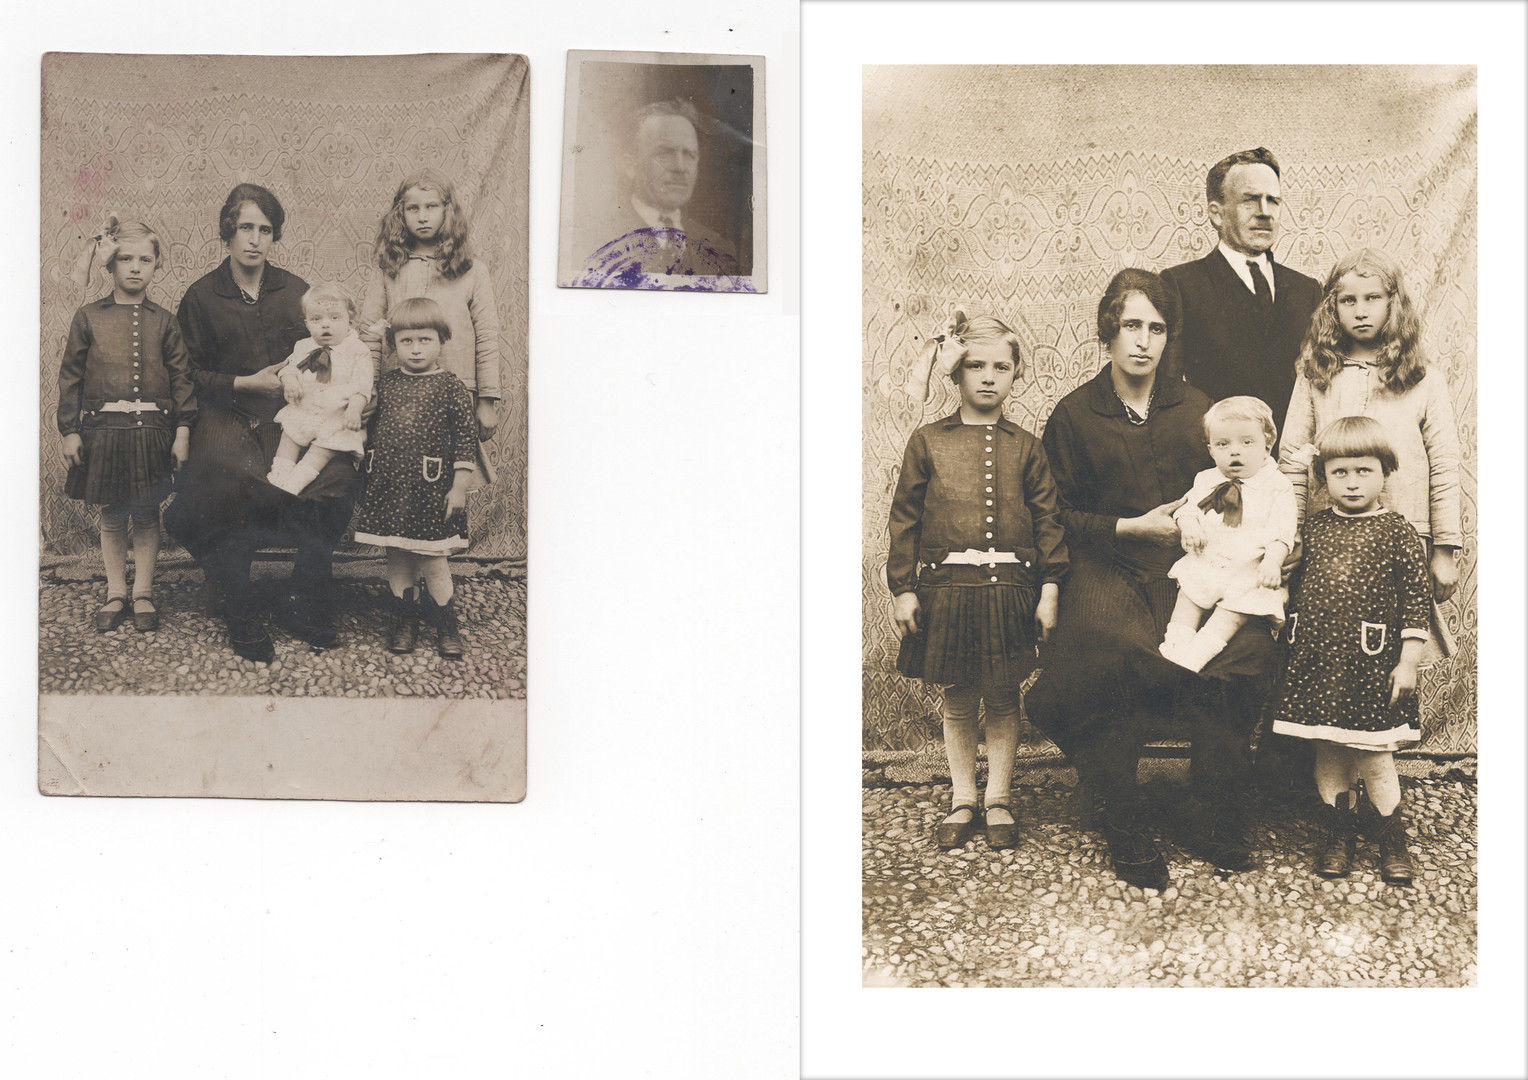 Restauration photo